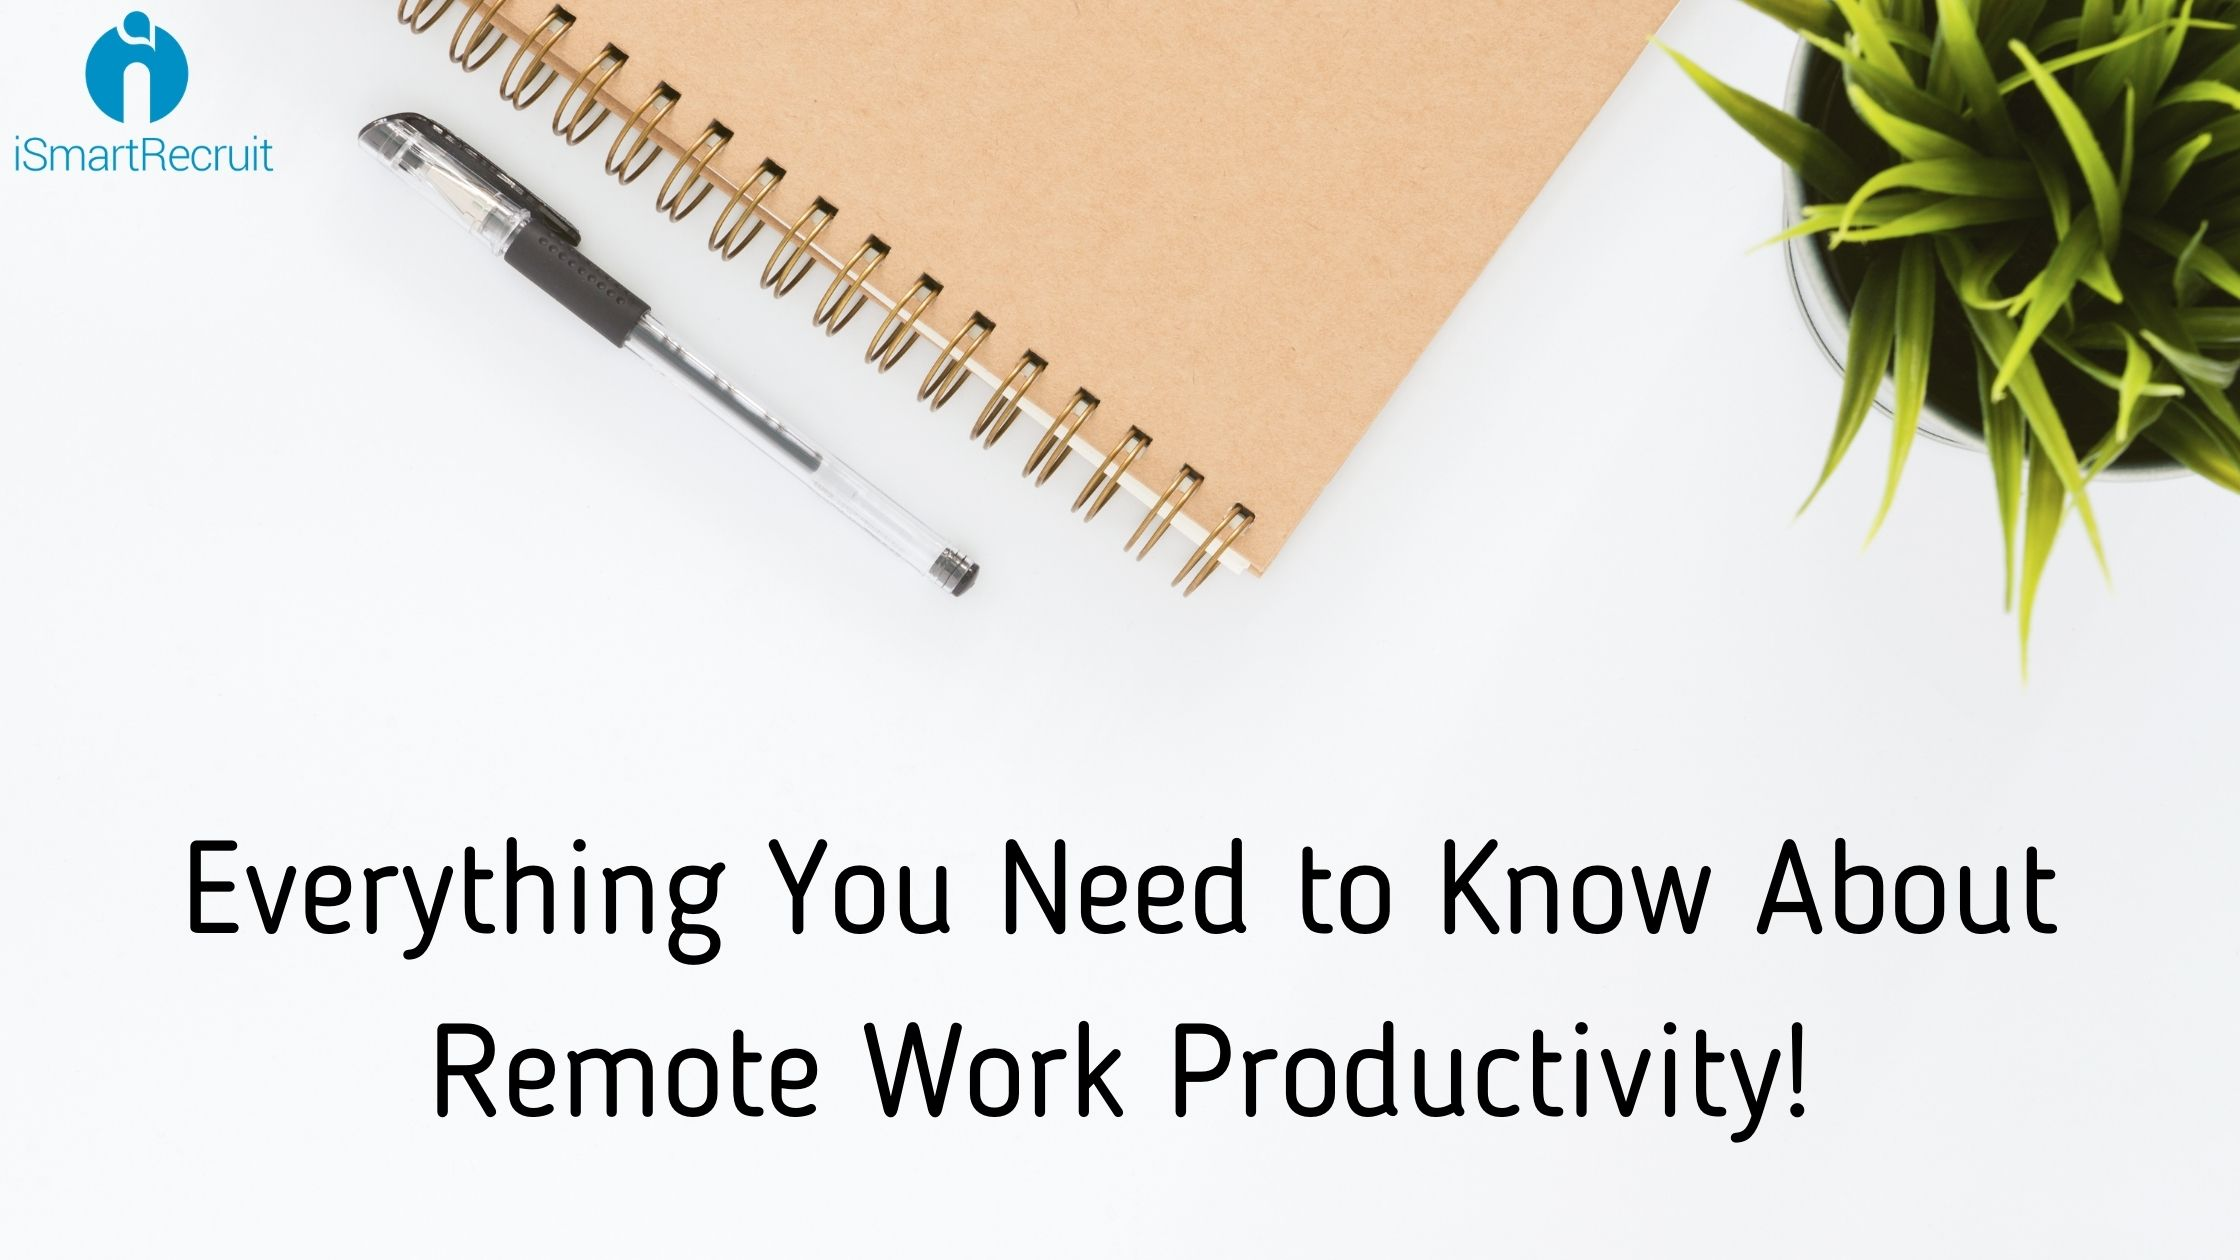 Everything You Need to Know About Remote Work Productivity!